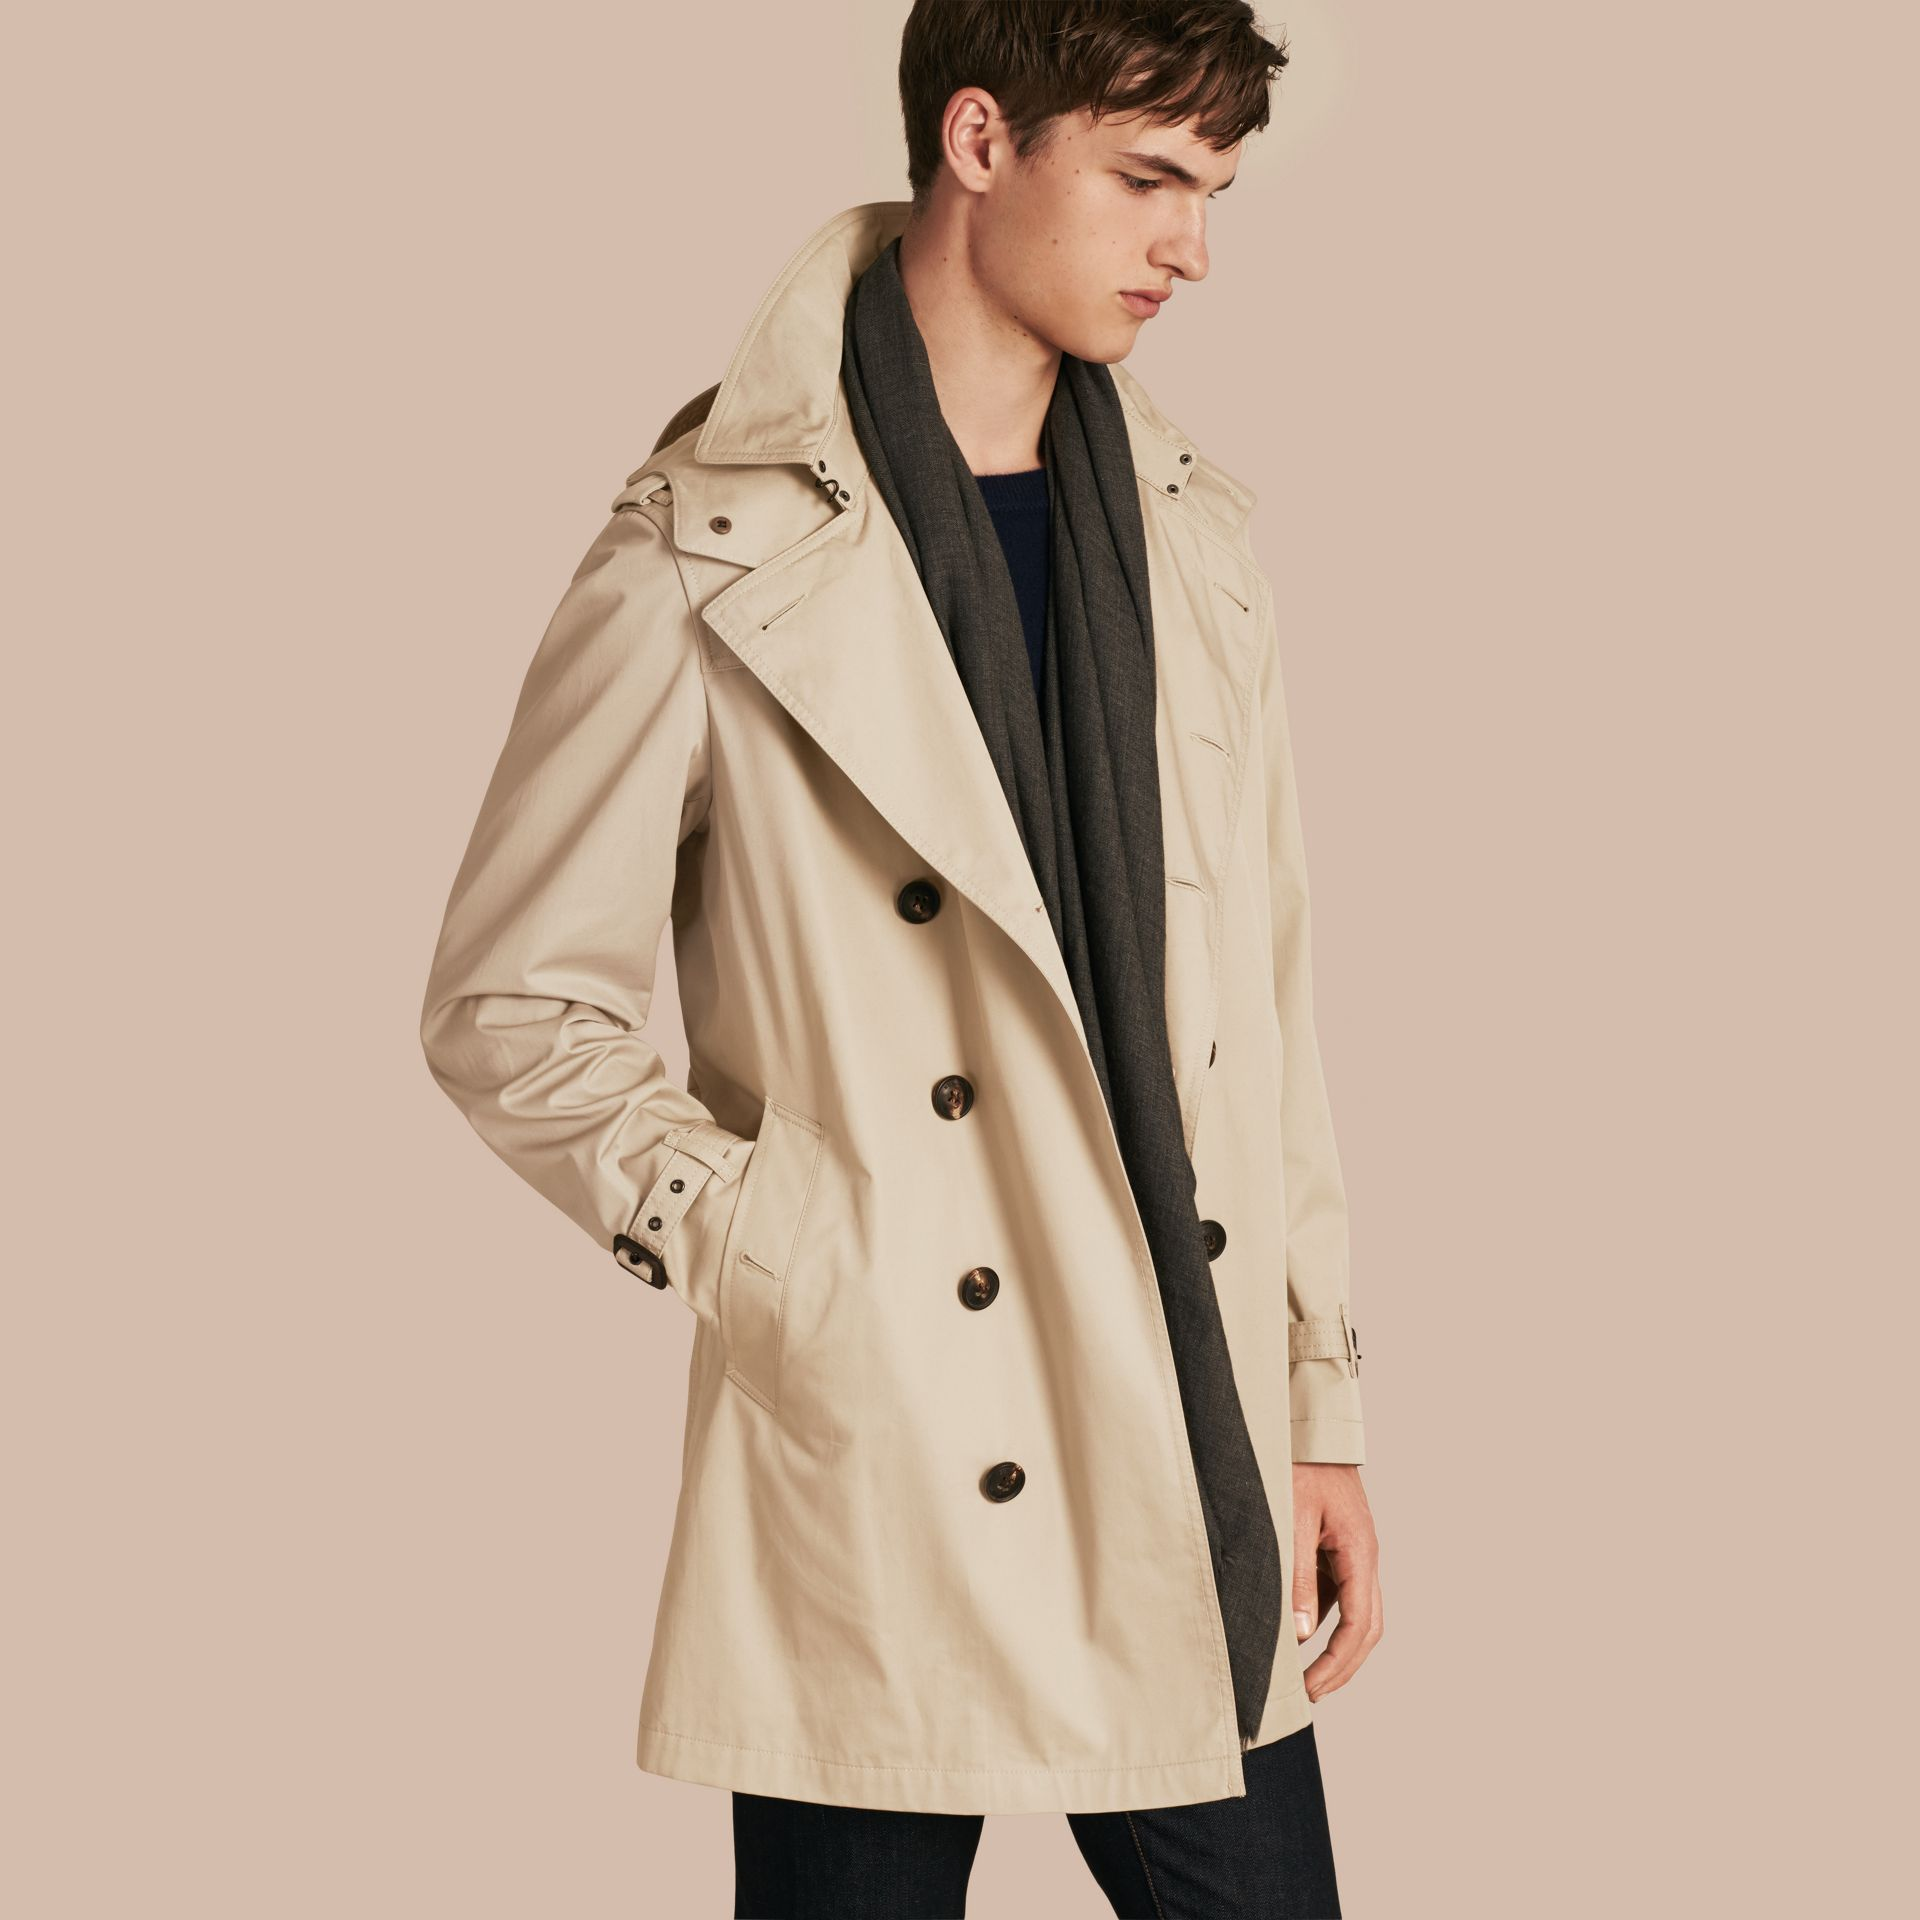 Taupe Cotton Trench Coat with Detachable Hood Taupe - gallery image 1